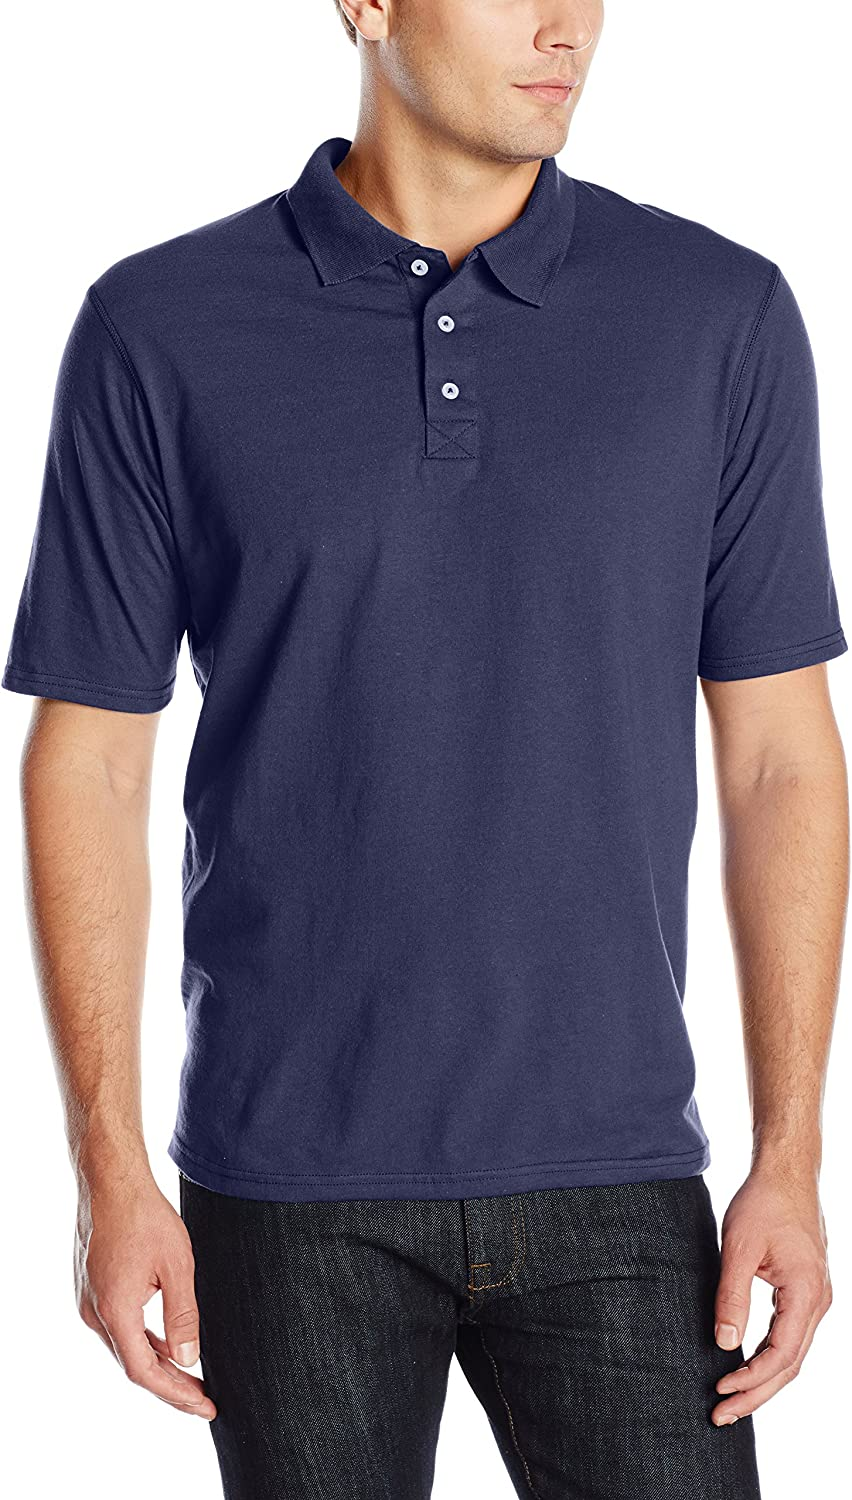 Hanes Men's X-Temp Performance Polo Shirt (1 Pack or 2 Pack)